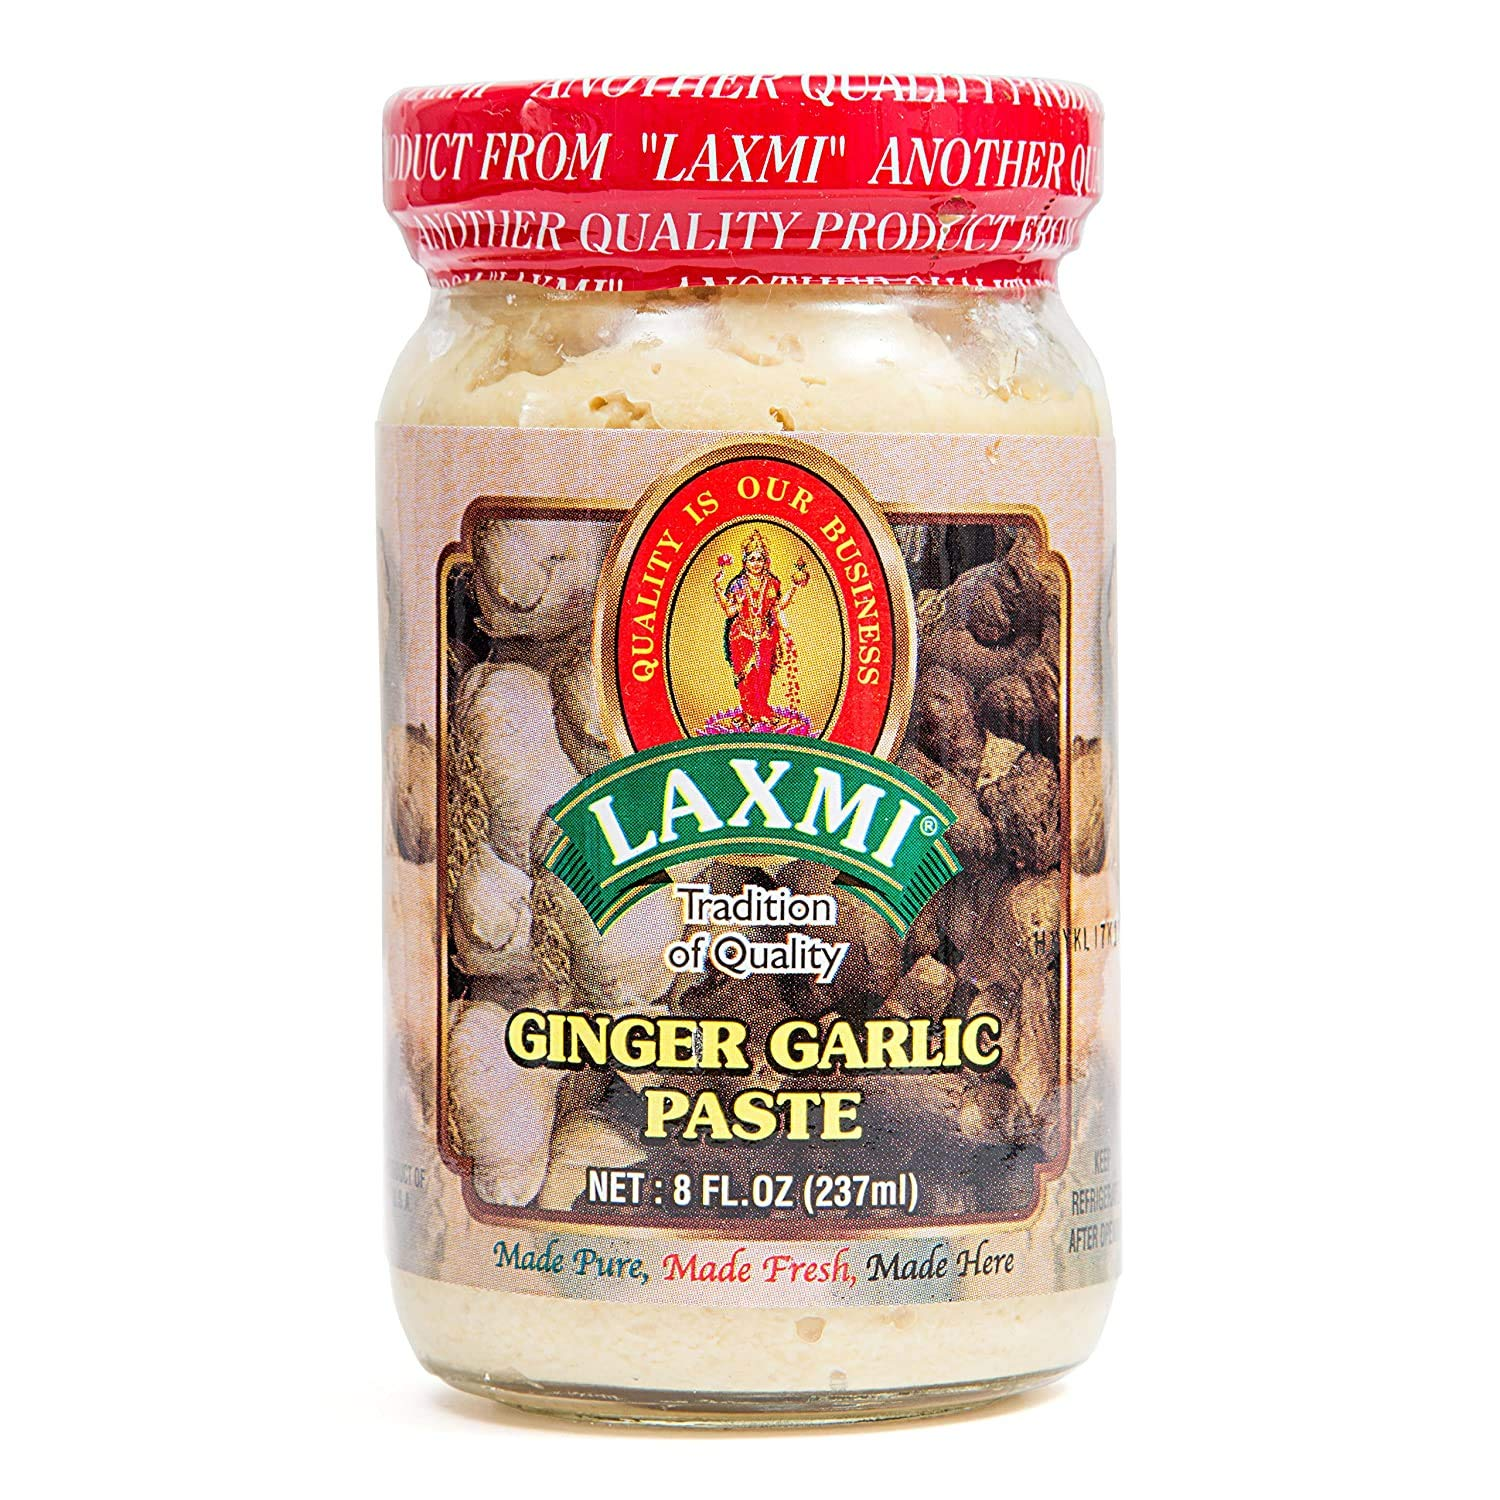 Laxmi Brand Traditional Indian Ginger and Garlic Cooking Paste, Indian Food Staple, Made Pure, Made Fresh, Tradition of Quality, Product of India (8oz)